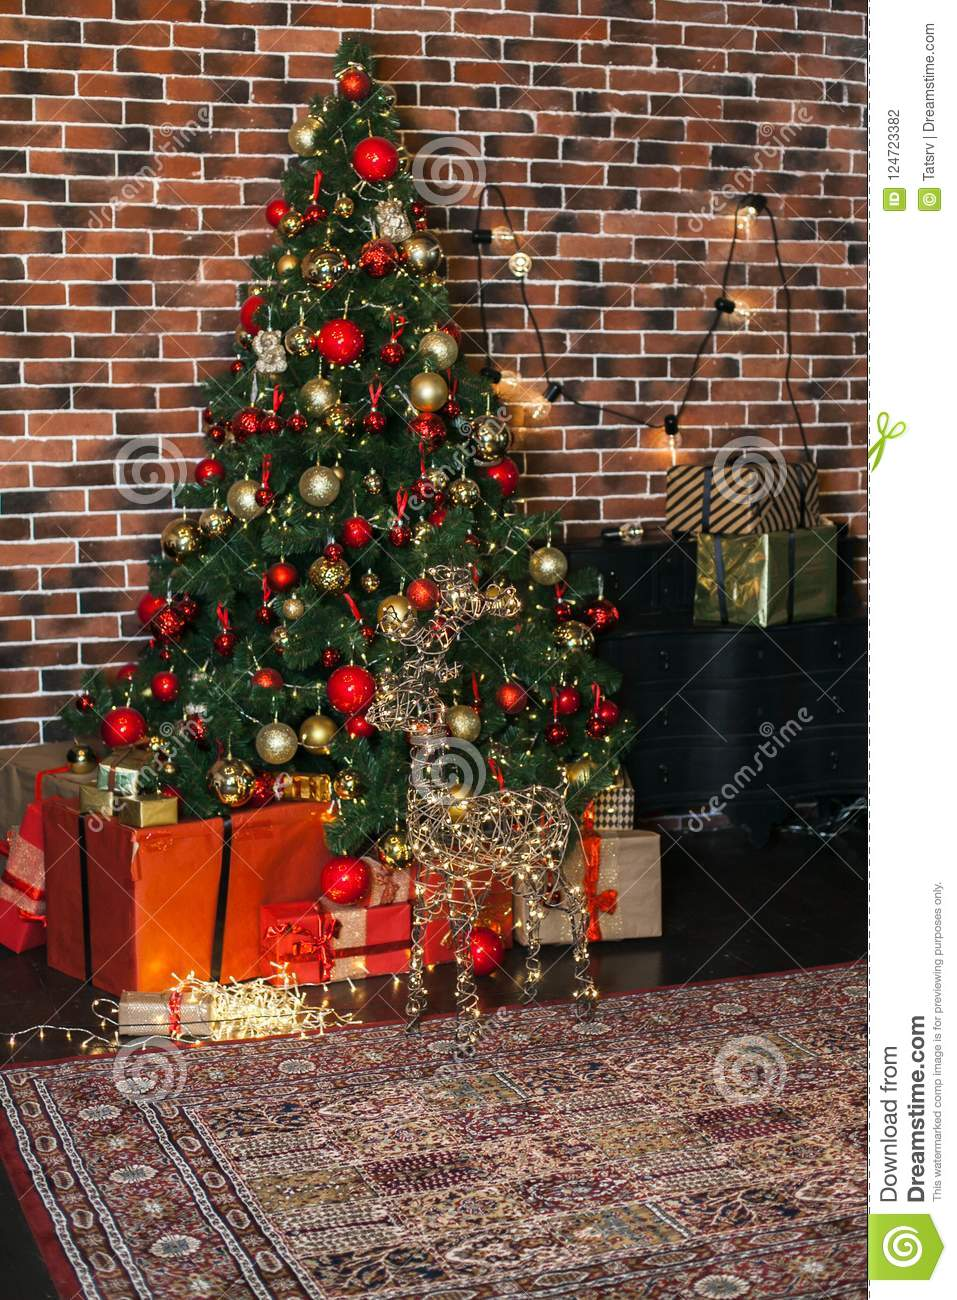 Beautiful Christmas Living Room With Decorated Christmas Tree Gifts And Deer With The Glowing Lights At Night New Year Loft Inte Stock Photo Image Of Living December 124723382